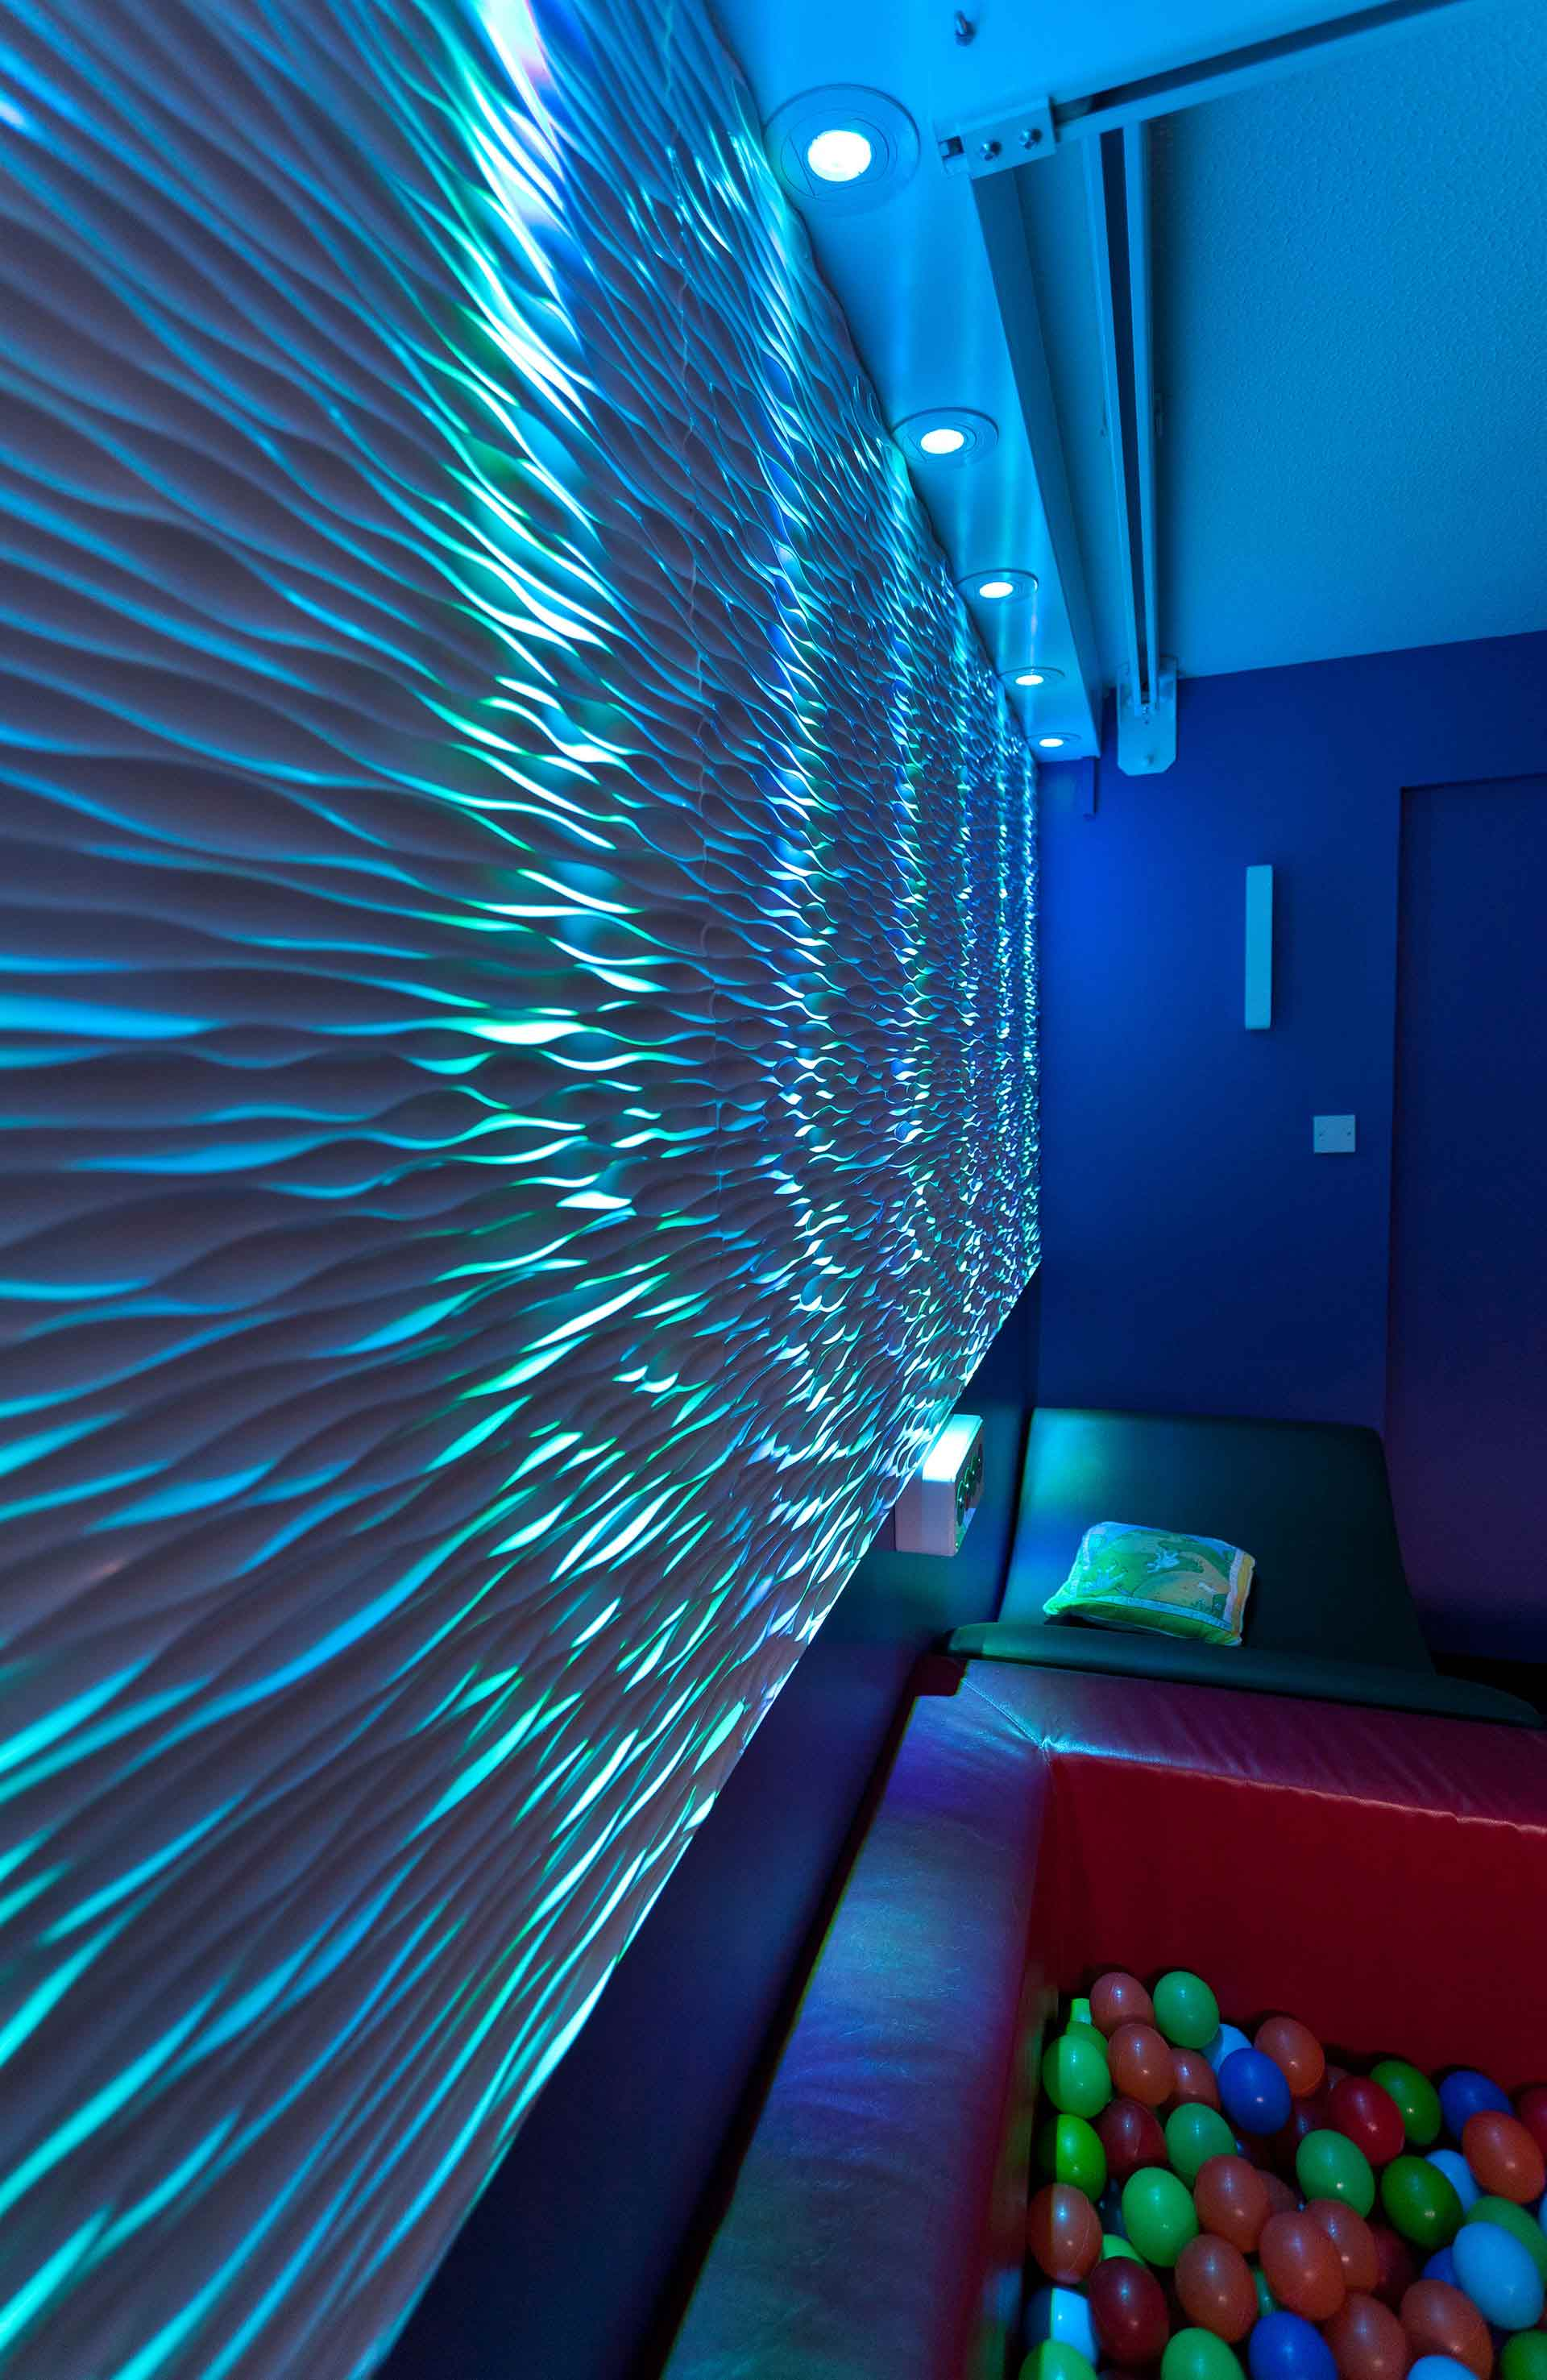 LED ambient lighting highlights tactile wall in sensory room designed by Boex